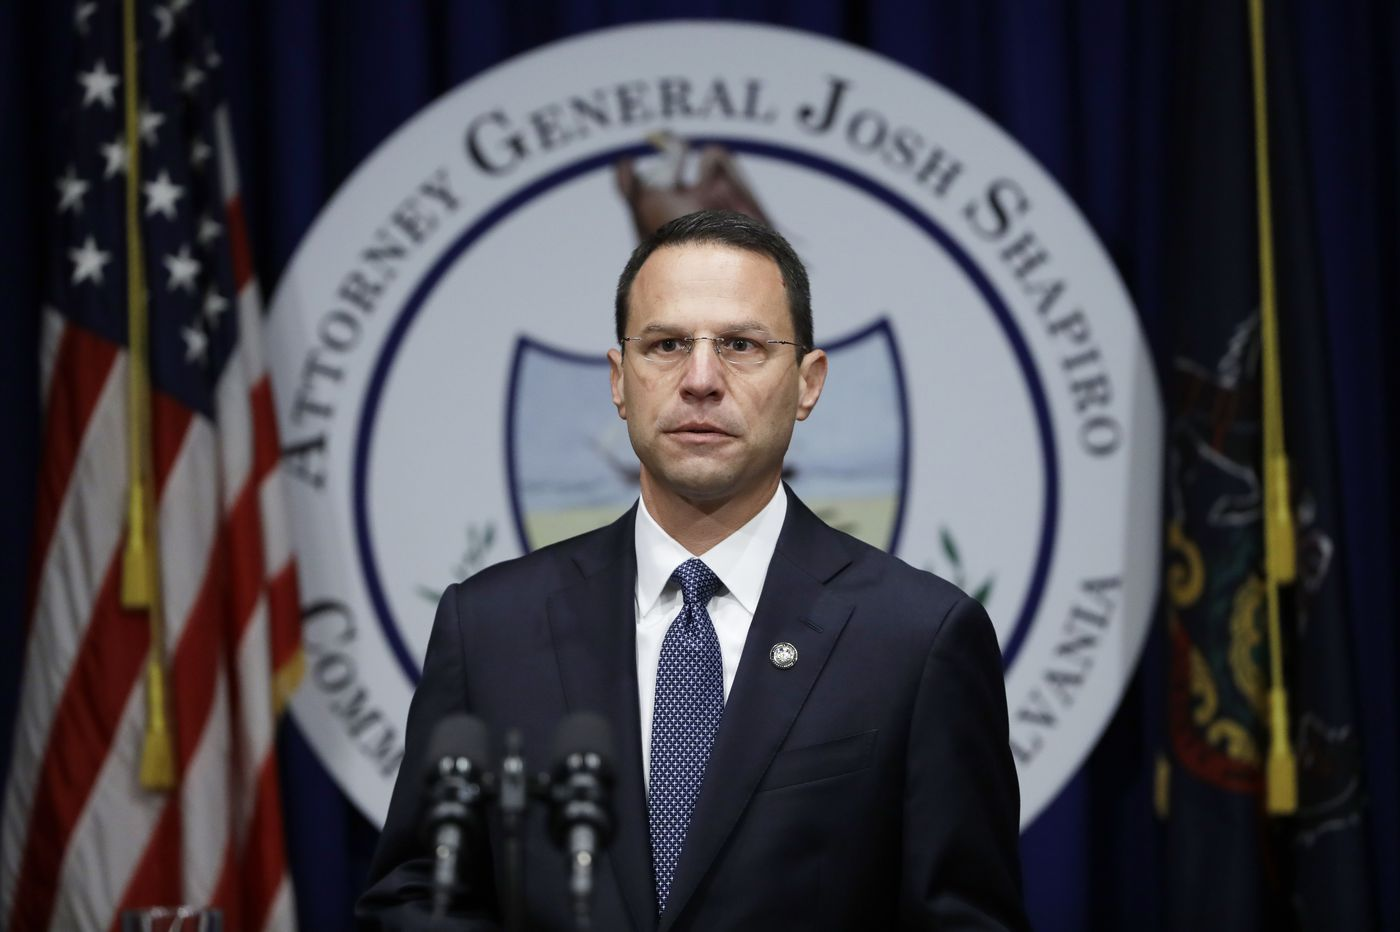 Josh Shapiro's slickly managed press conference stepped on his message | Opinion